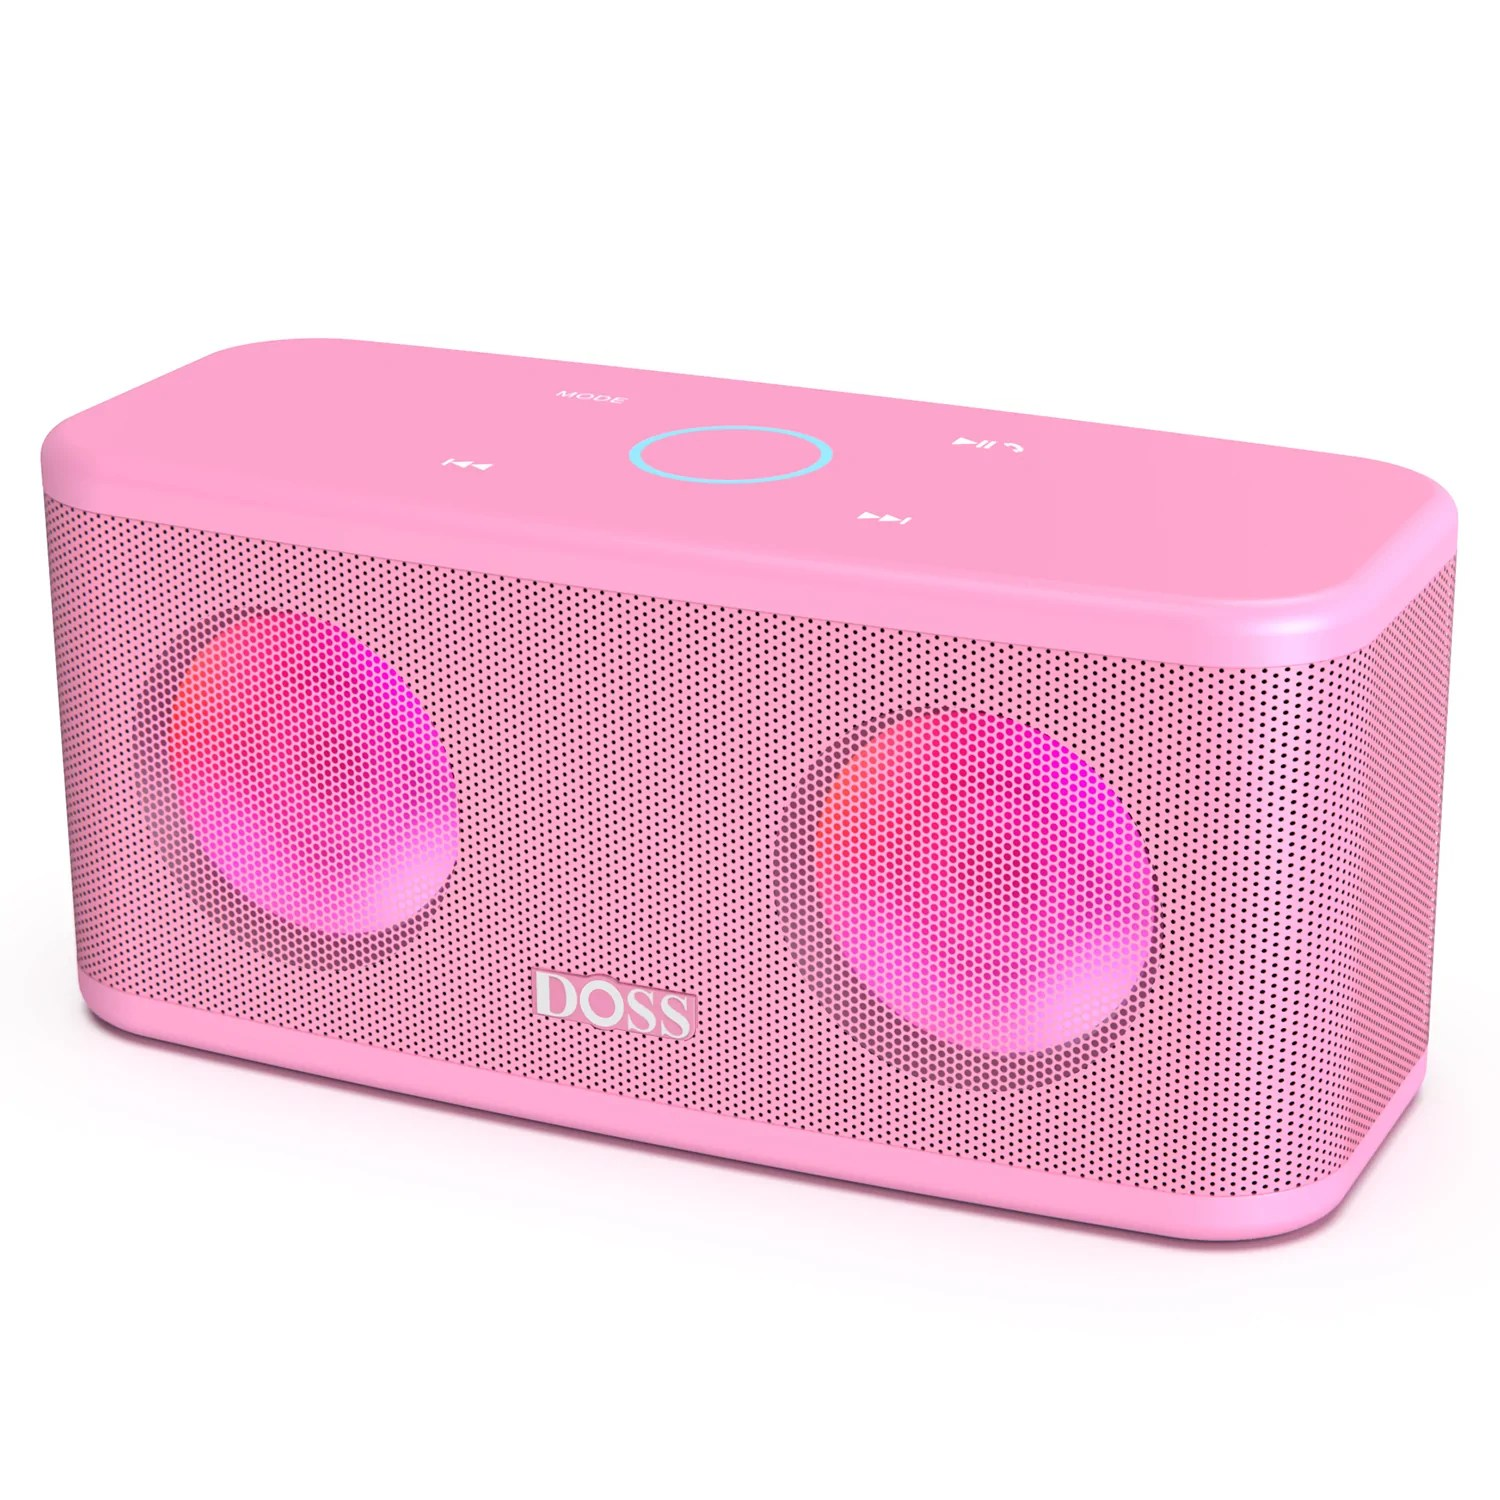 For Doss Soundbox Xl Bluetooth Speakers New Daul Driver Wireless Bluetooth H Portable Audio Headphones Audio Player Docks Mini Speakers